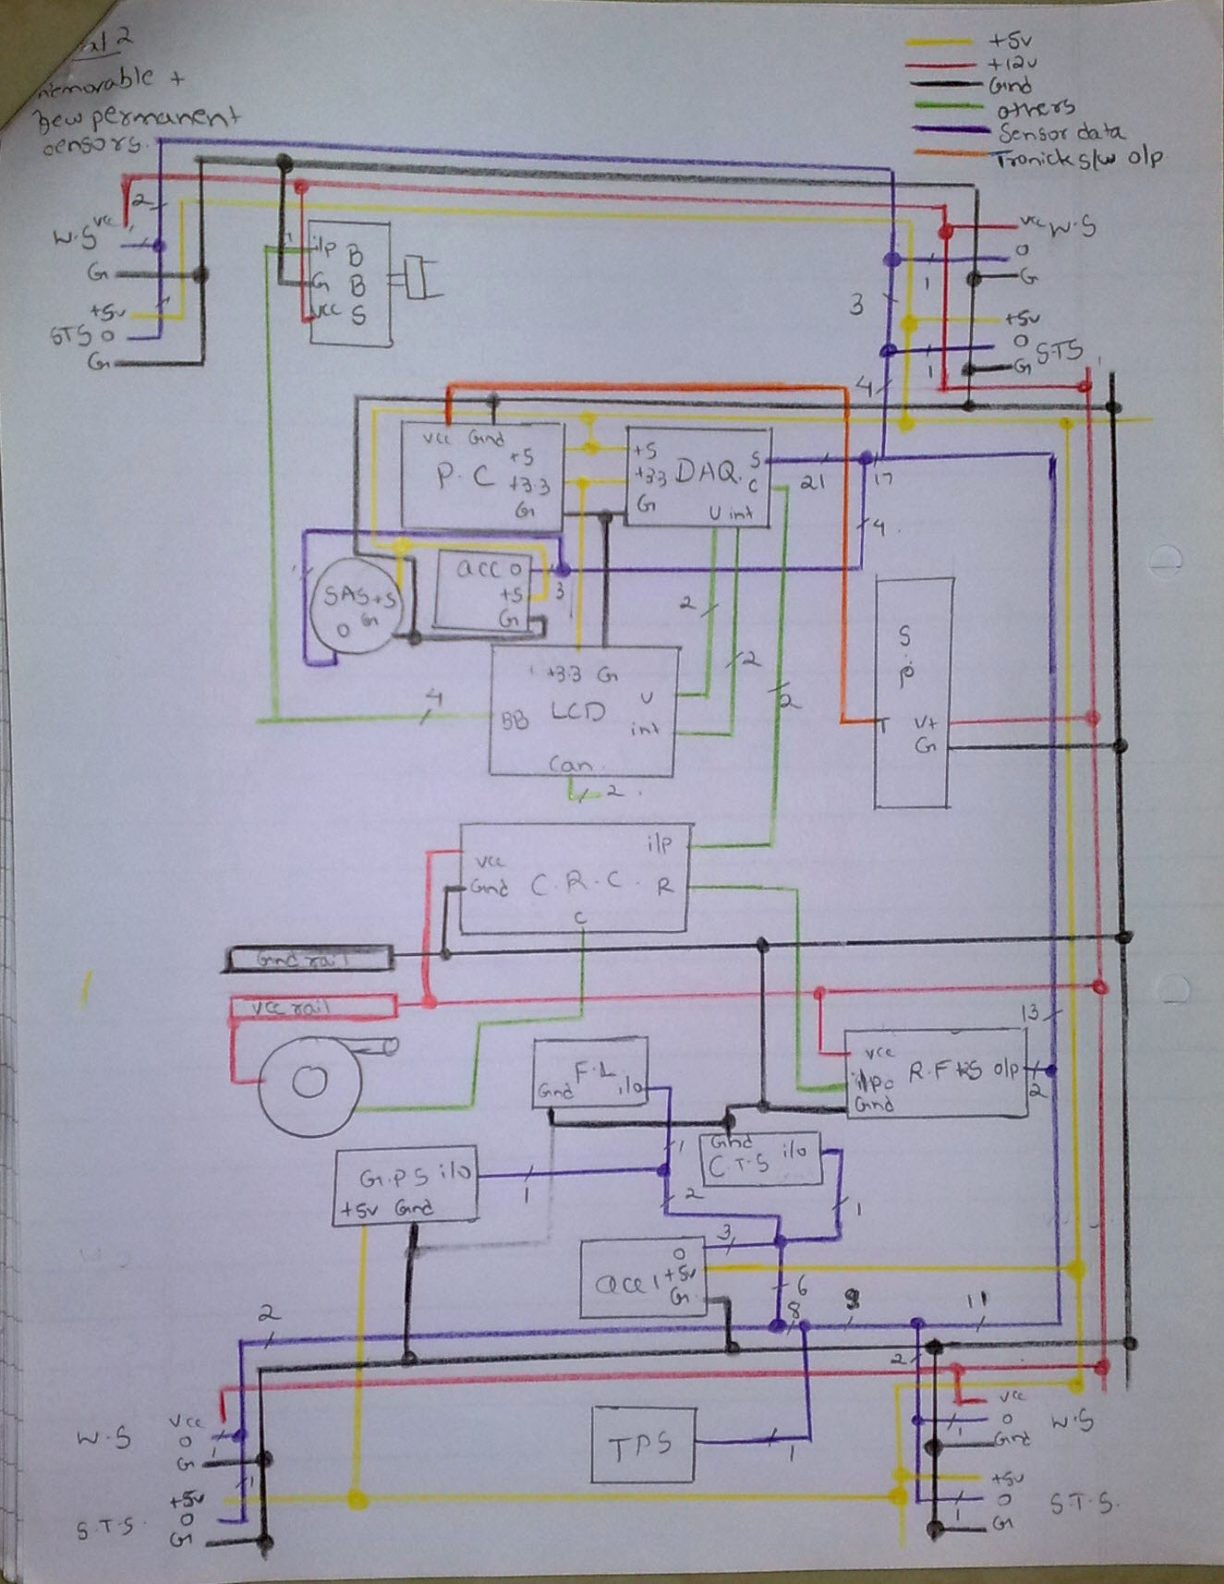 Drag Race Car Wiring Diagram Marine Battery Disconnect Switch Wiring Diagram and forum Discussion Of Drag Race Car Wiring Diagram